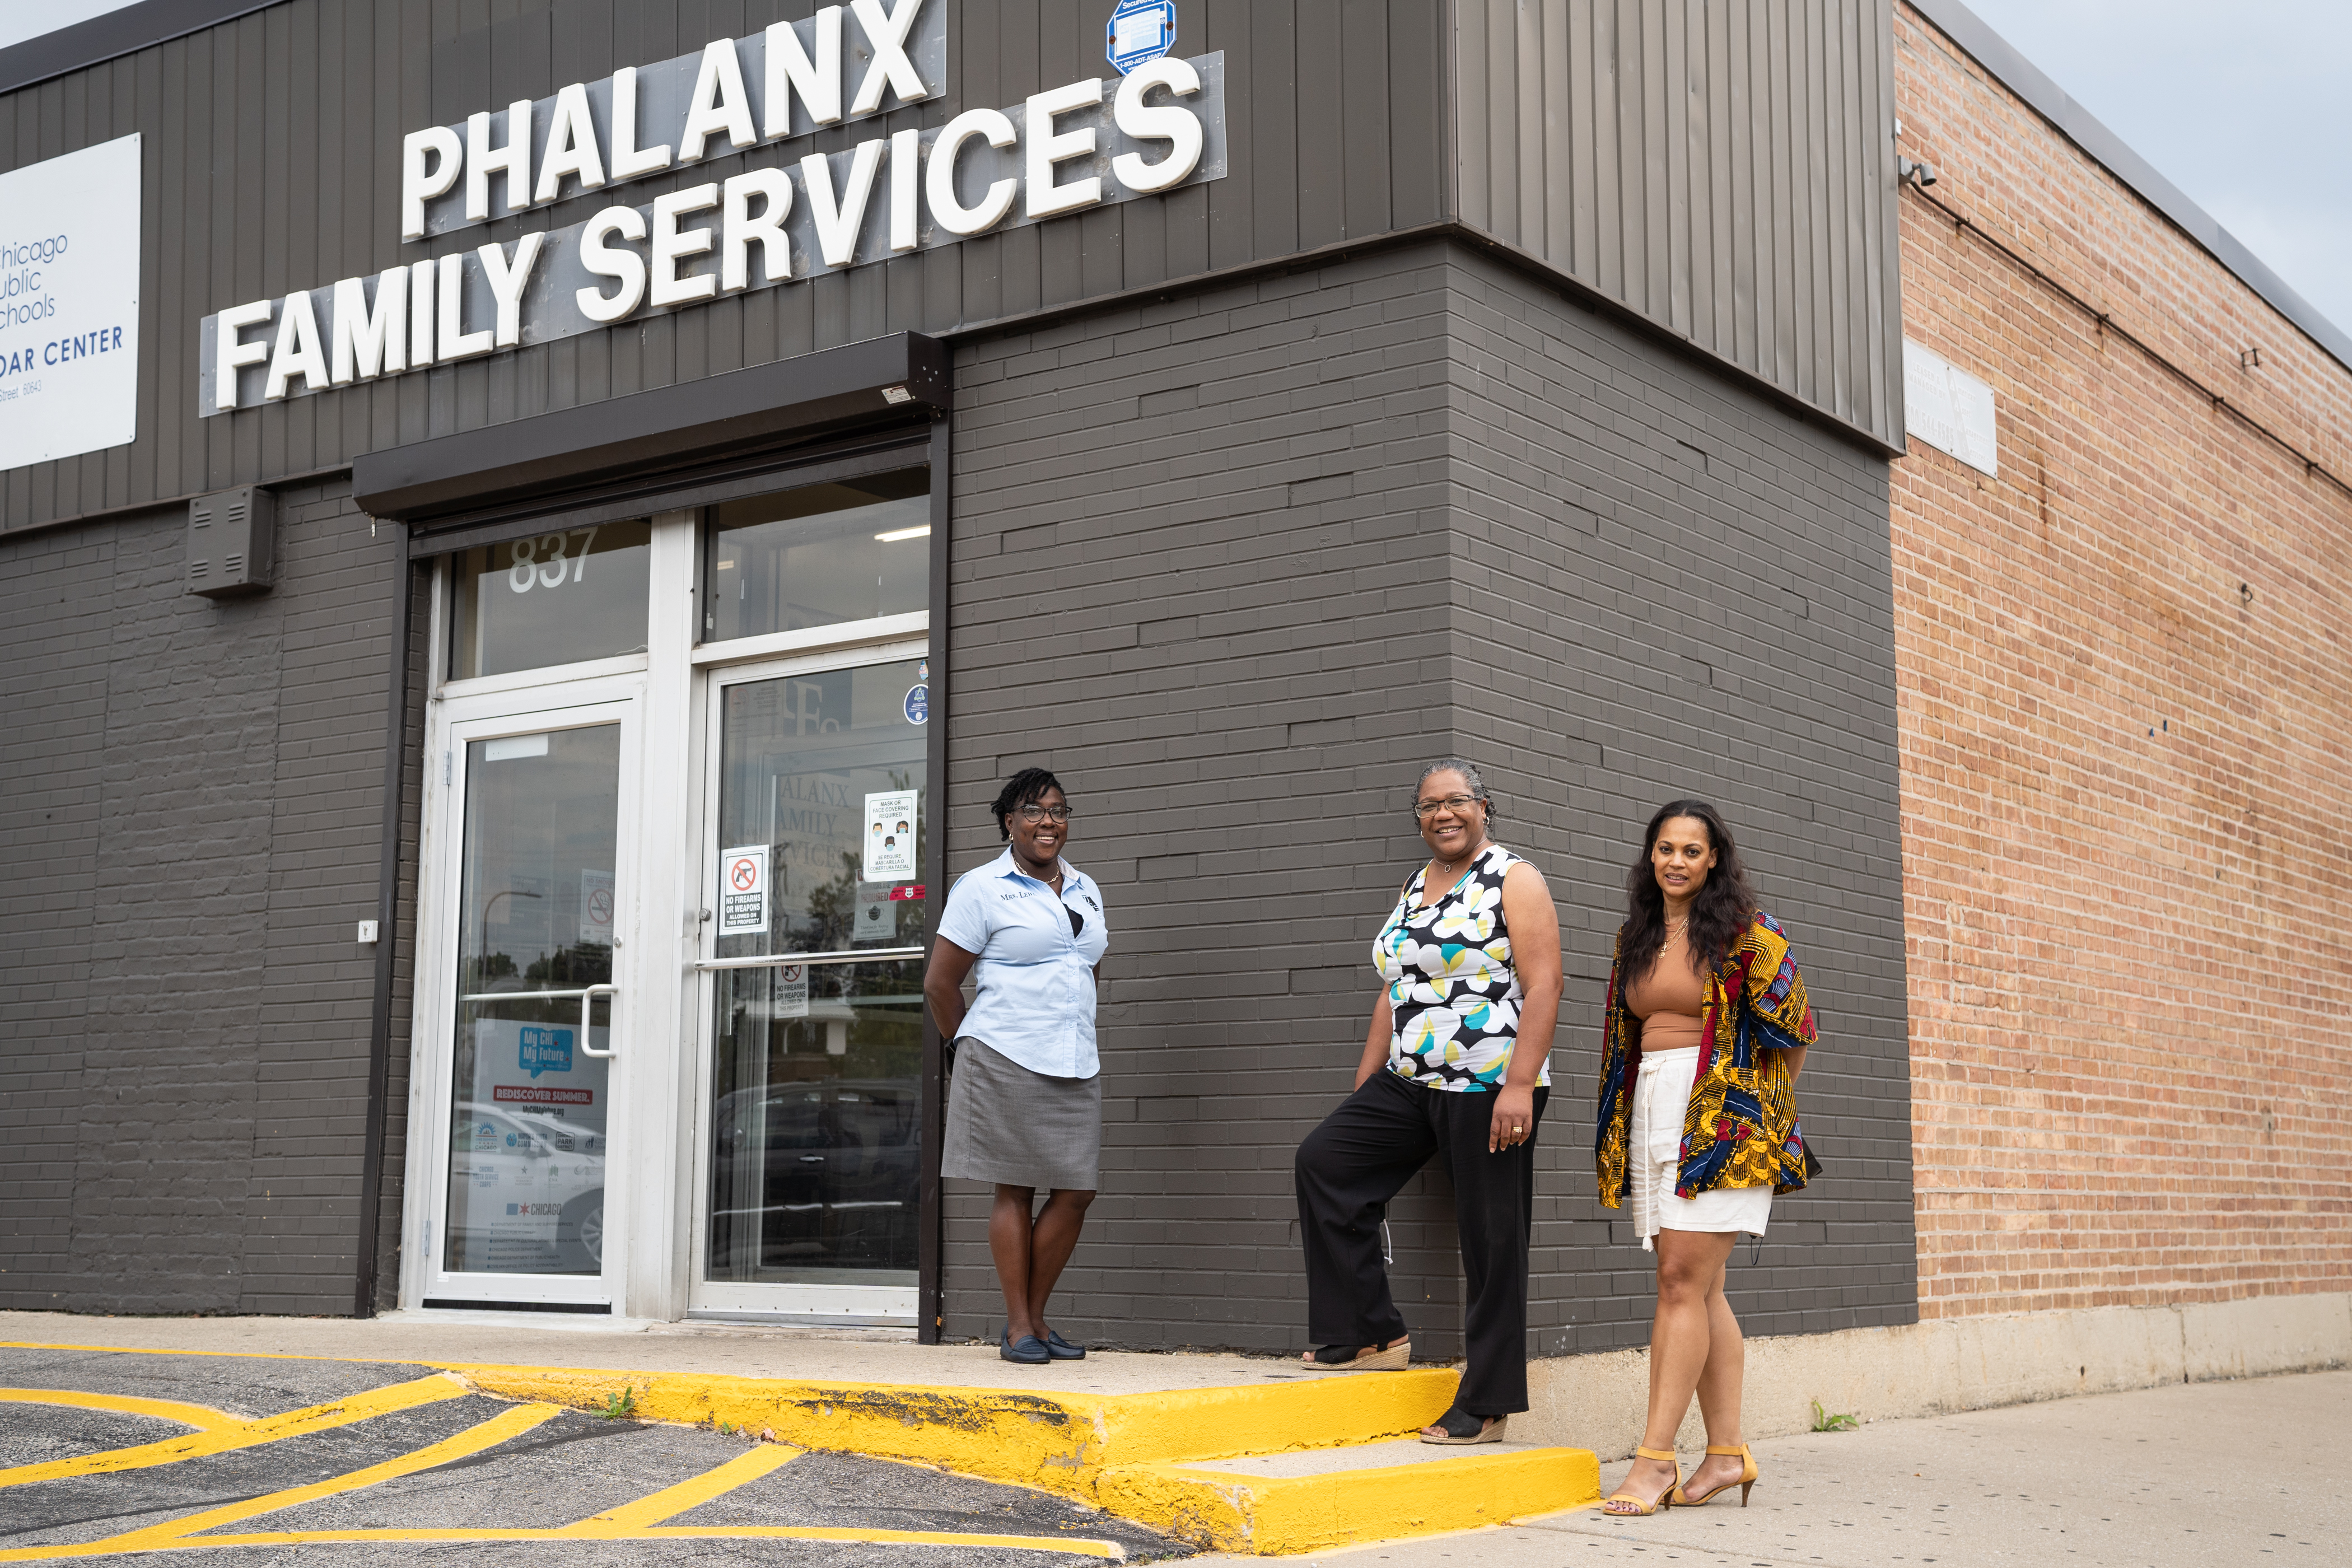 Roseland Reconnection Hub leaders Pauline Sylvain-Lewis and Laura Bailey, and Iona Calhoun-Battiste of Thrive Chicago stand outside a gray brick building with the words Phalanx Family Services above the entrance door.